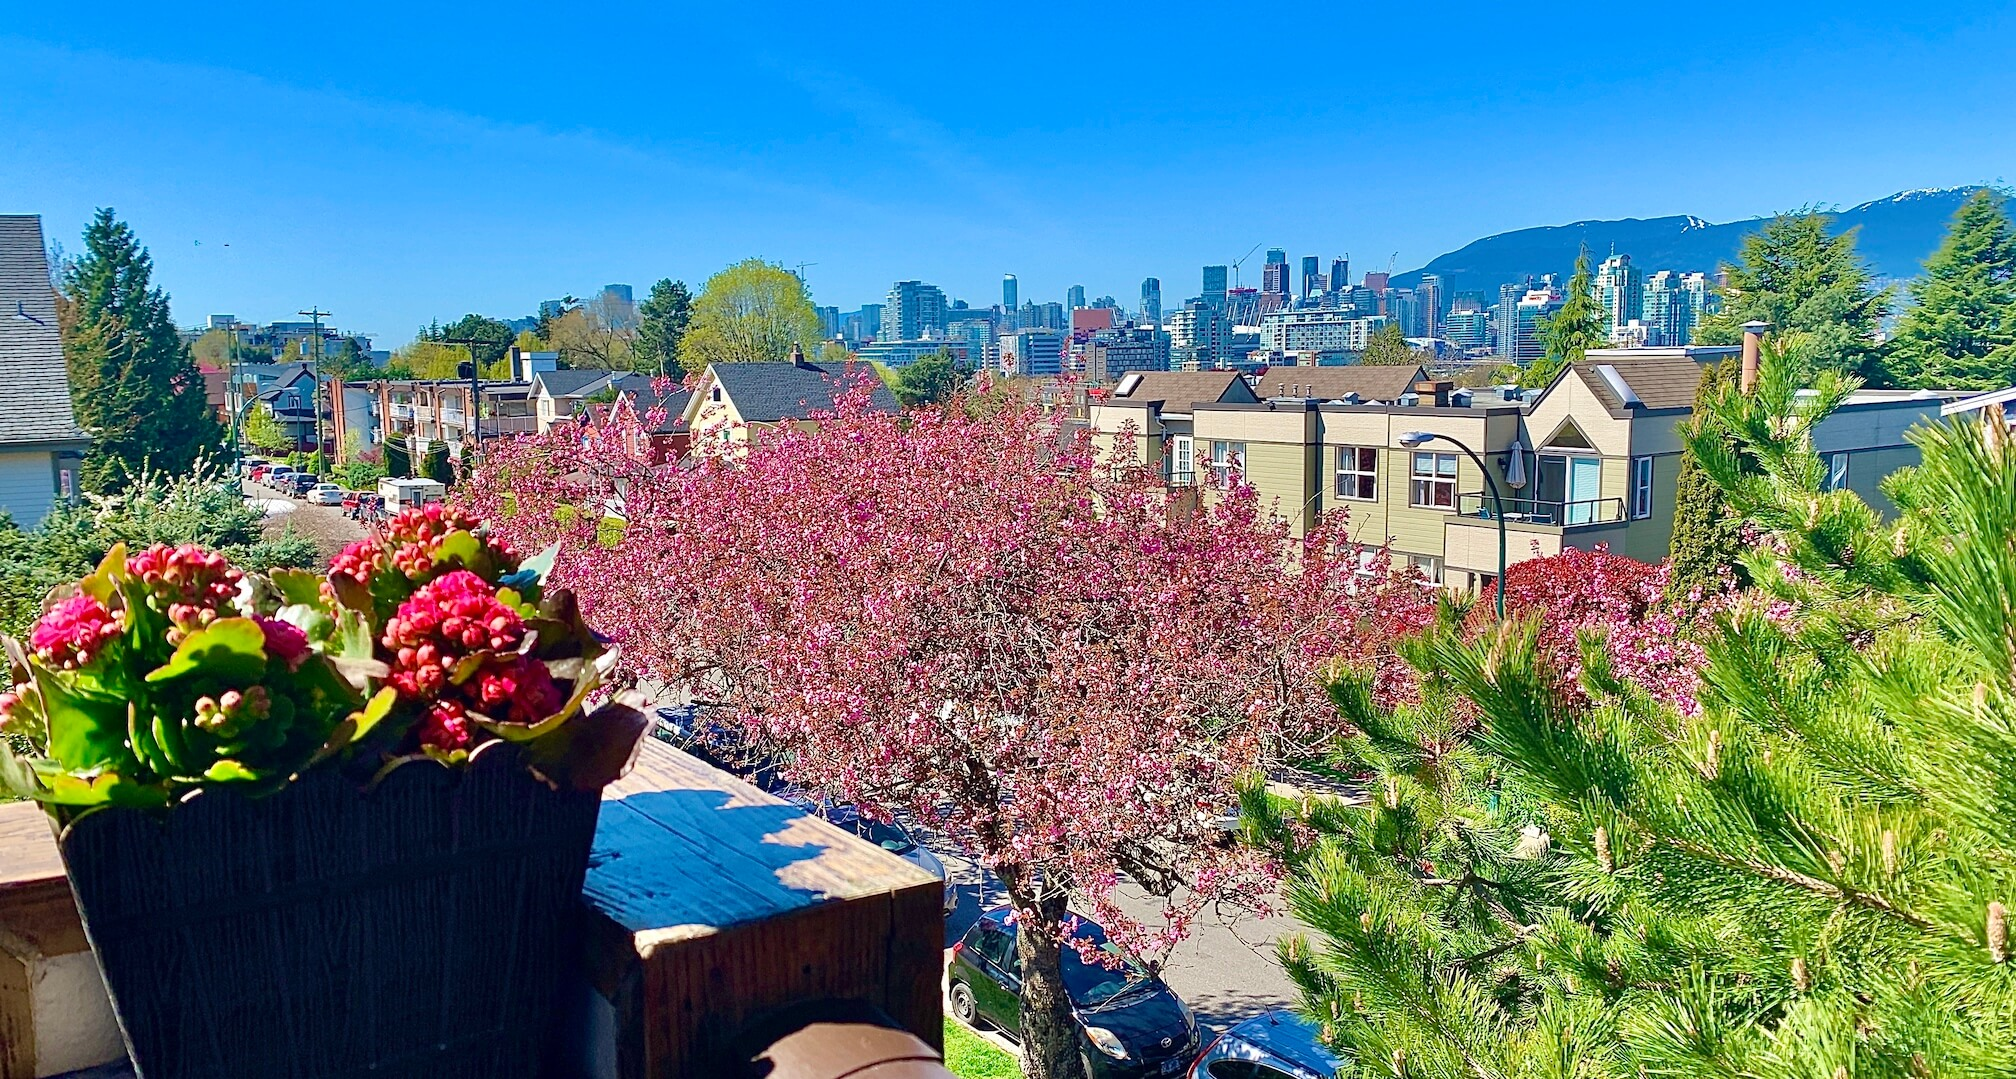 The Vancouver, BC downtown skyline with the North Shore mountains in the background and a brilliant blue sky. In the foreground is a newly blossoming cherry blossom tree.